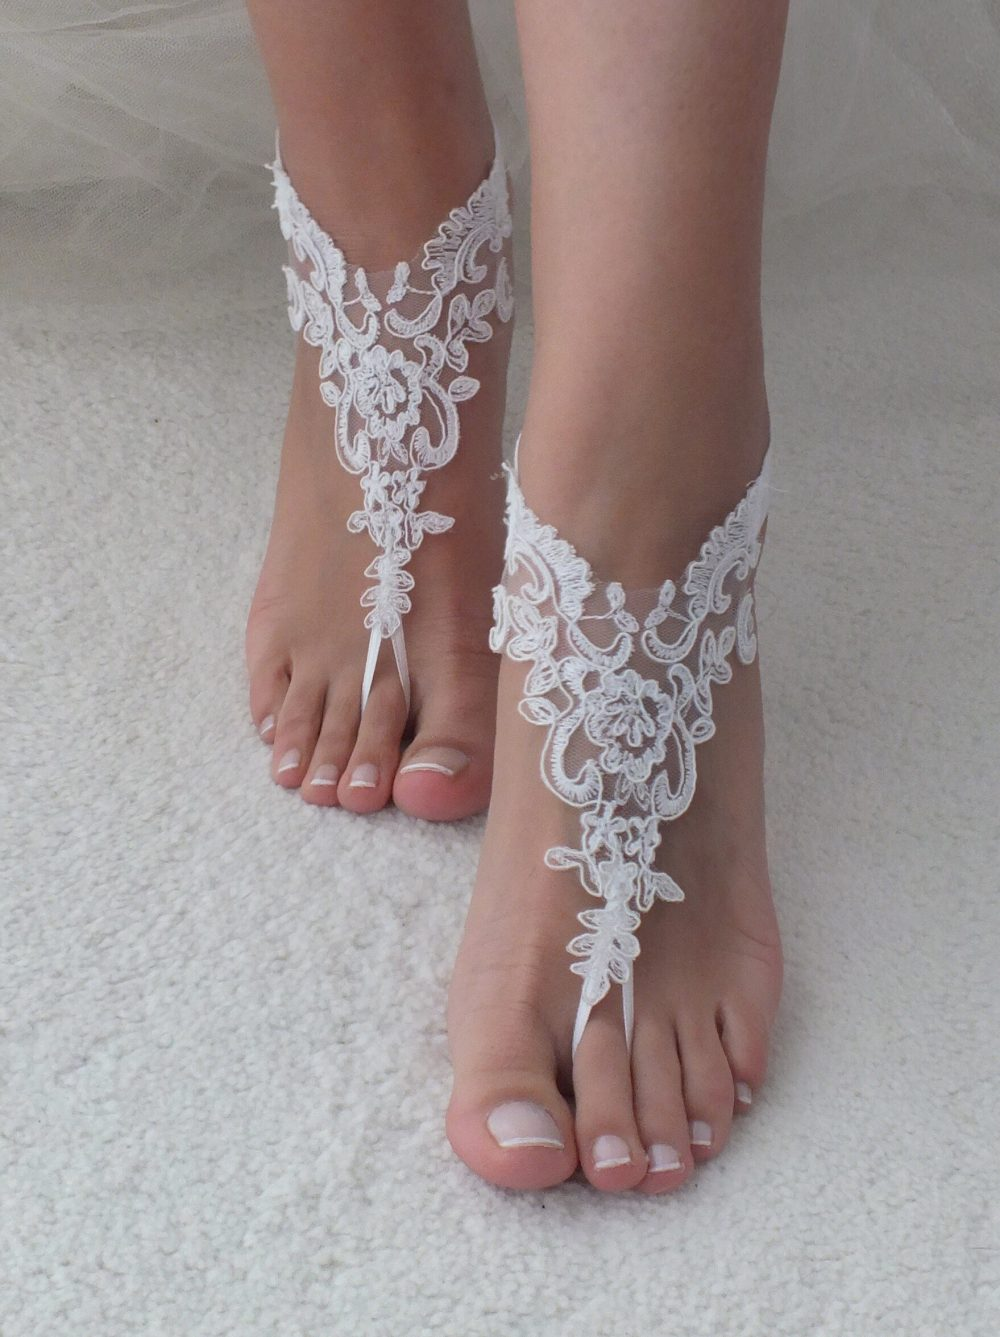 Express Shipping Beach Shoes, Lace Barefoot Sandals, Wedding Bridal Bridesmaid Gift, Shoe